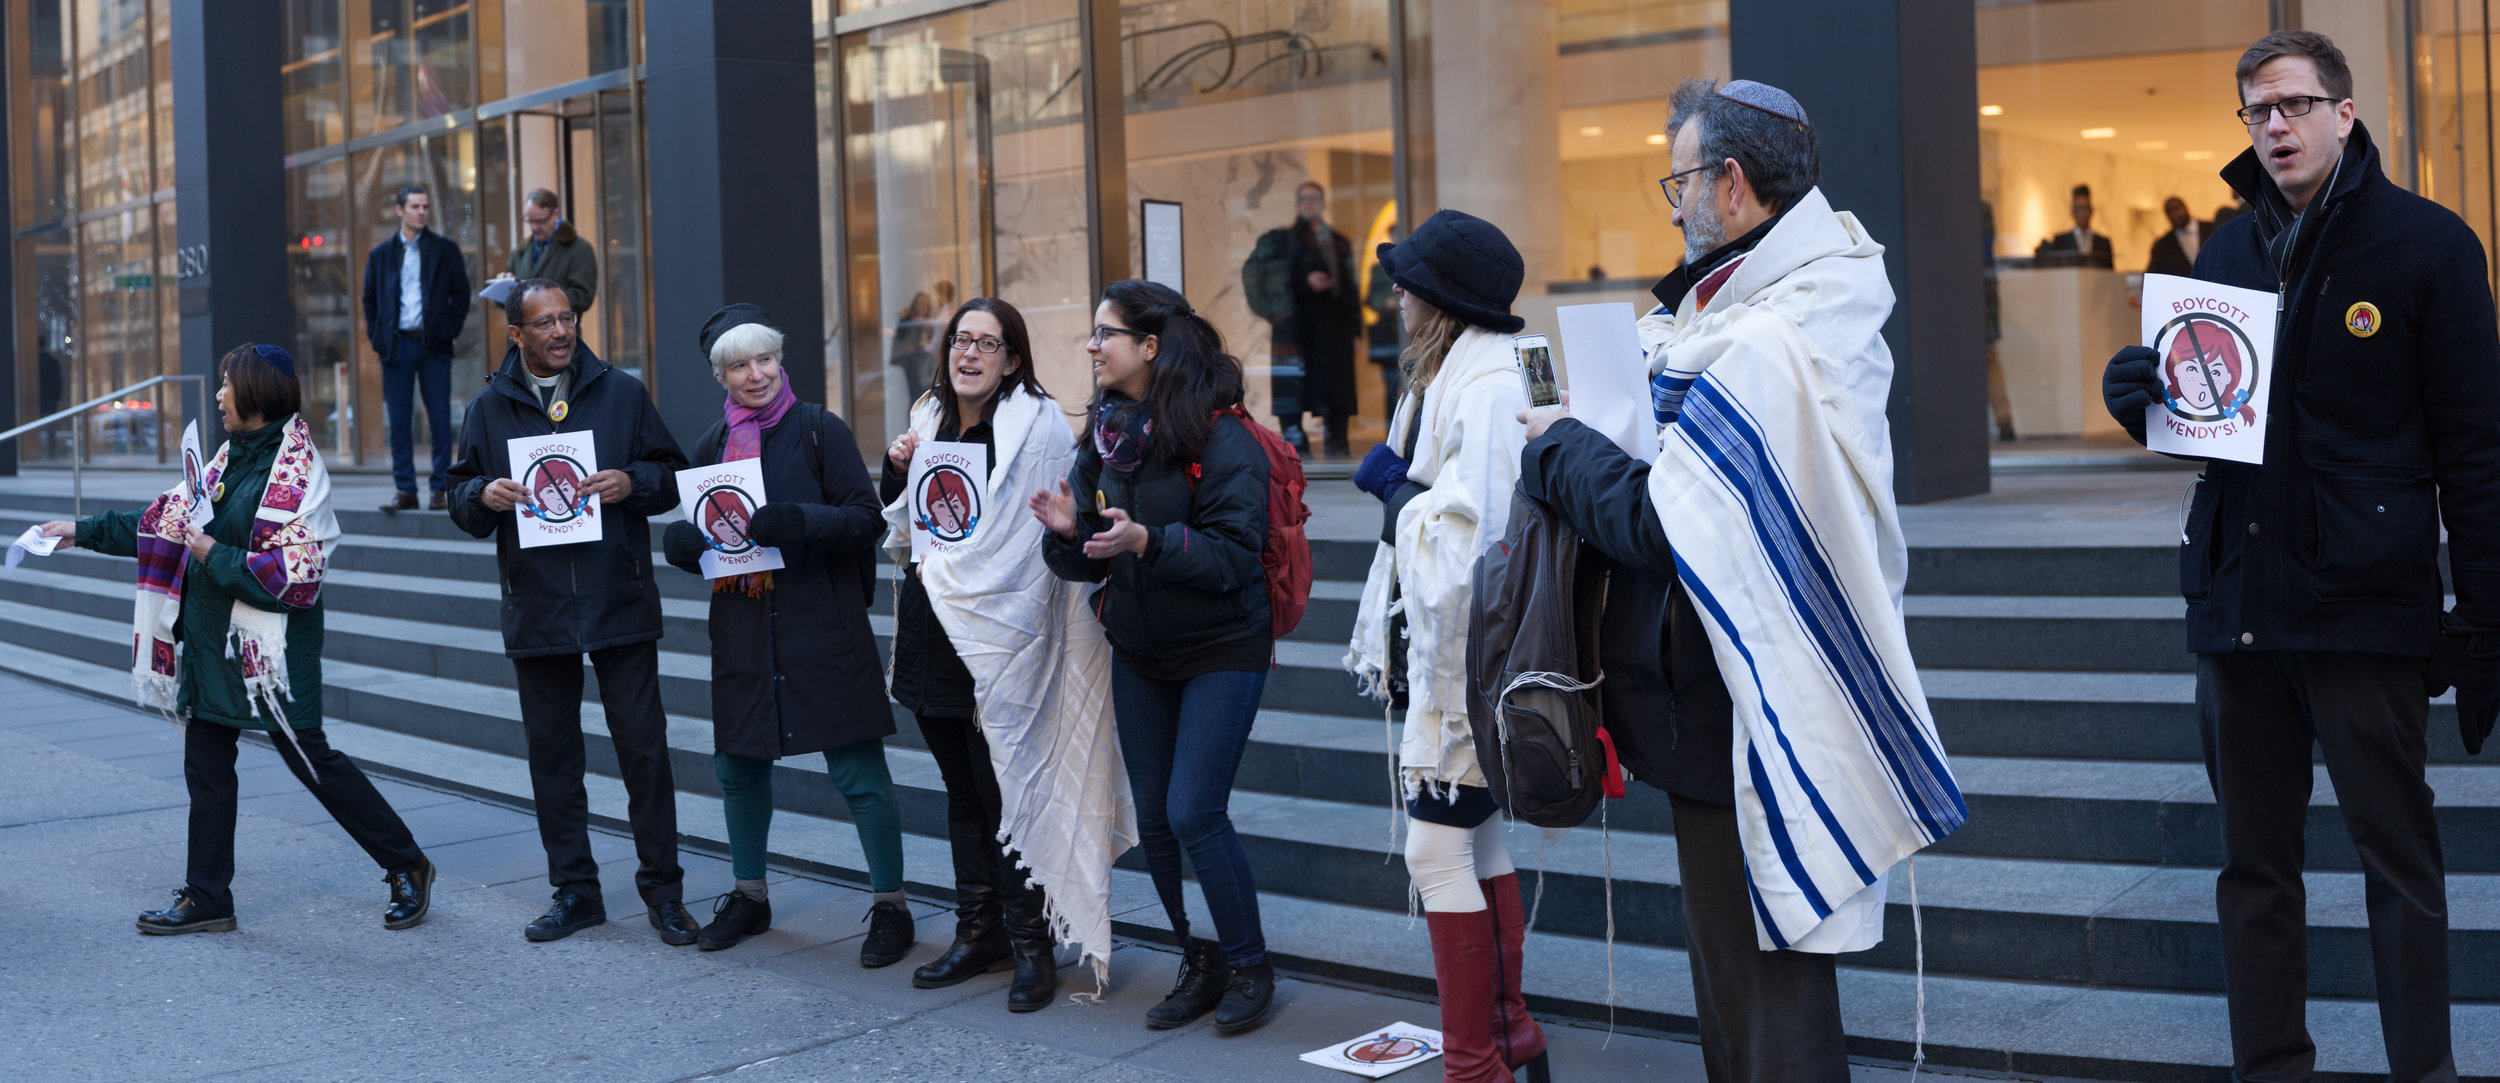 CIW Clergy Fast for Wendys_NYC-37.jpg